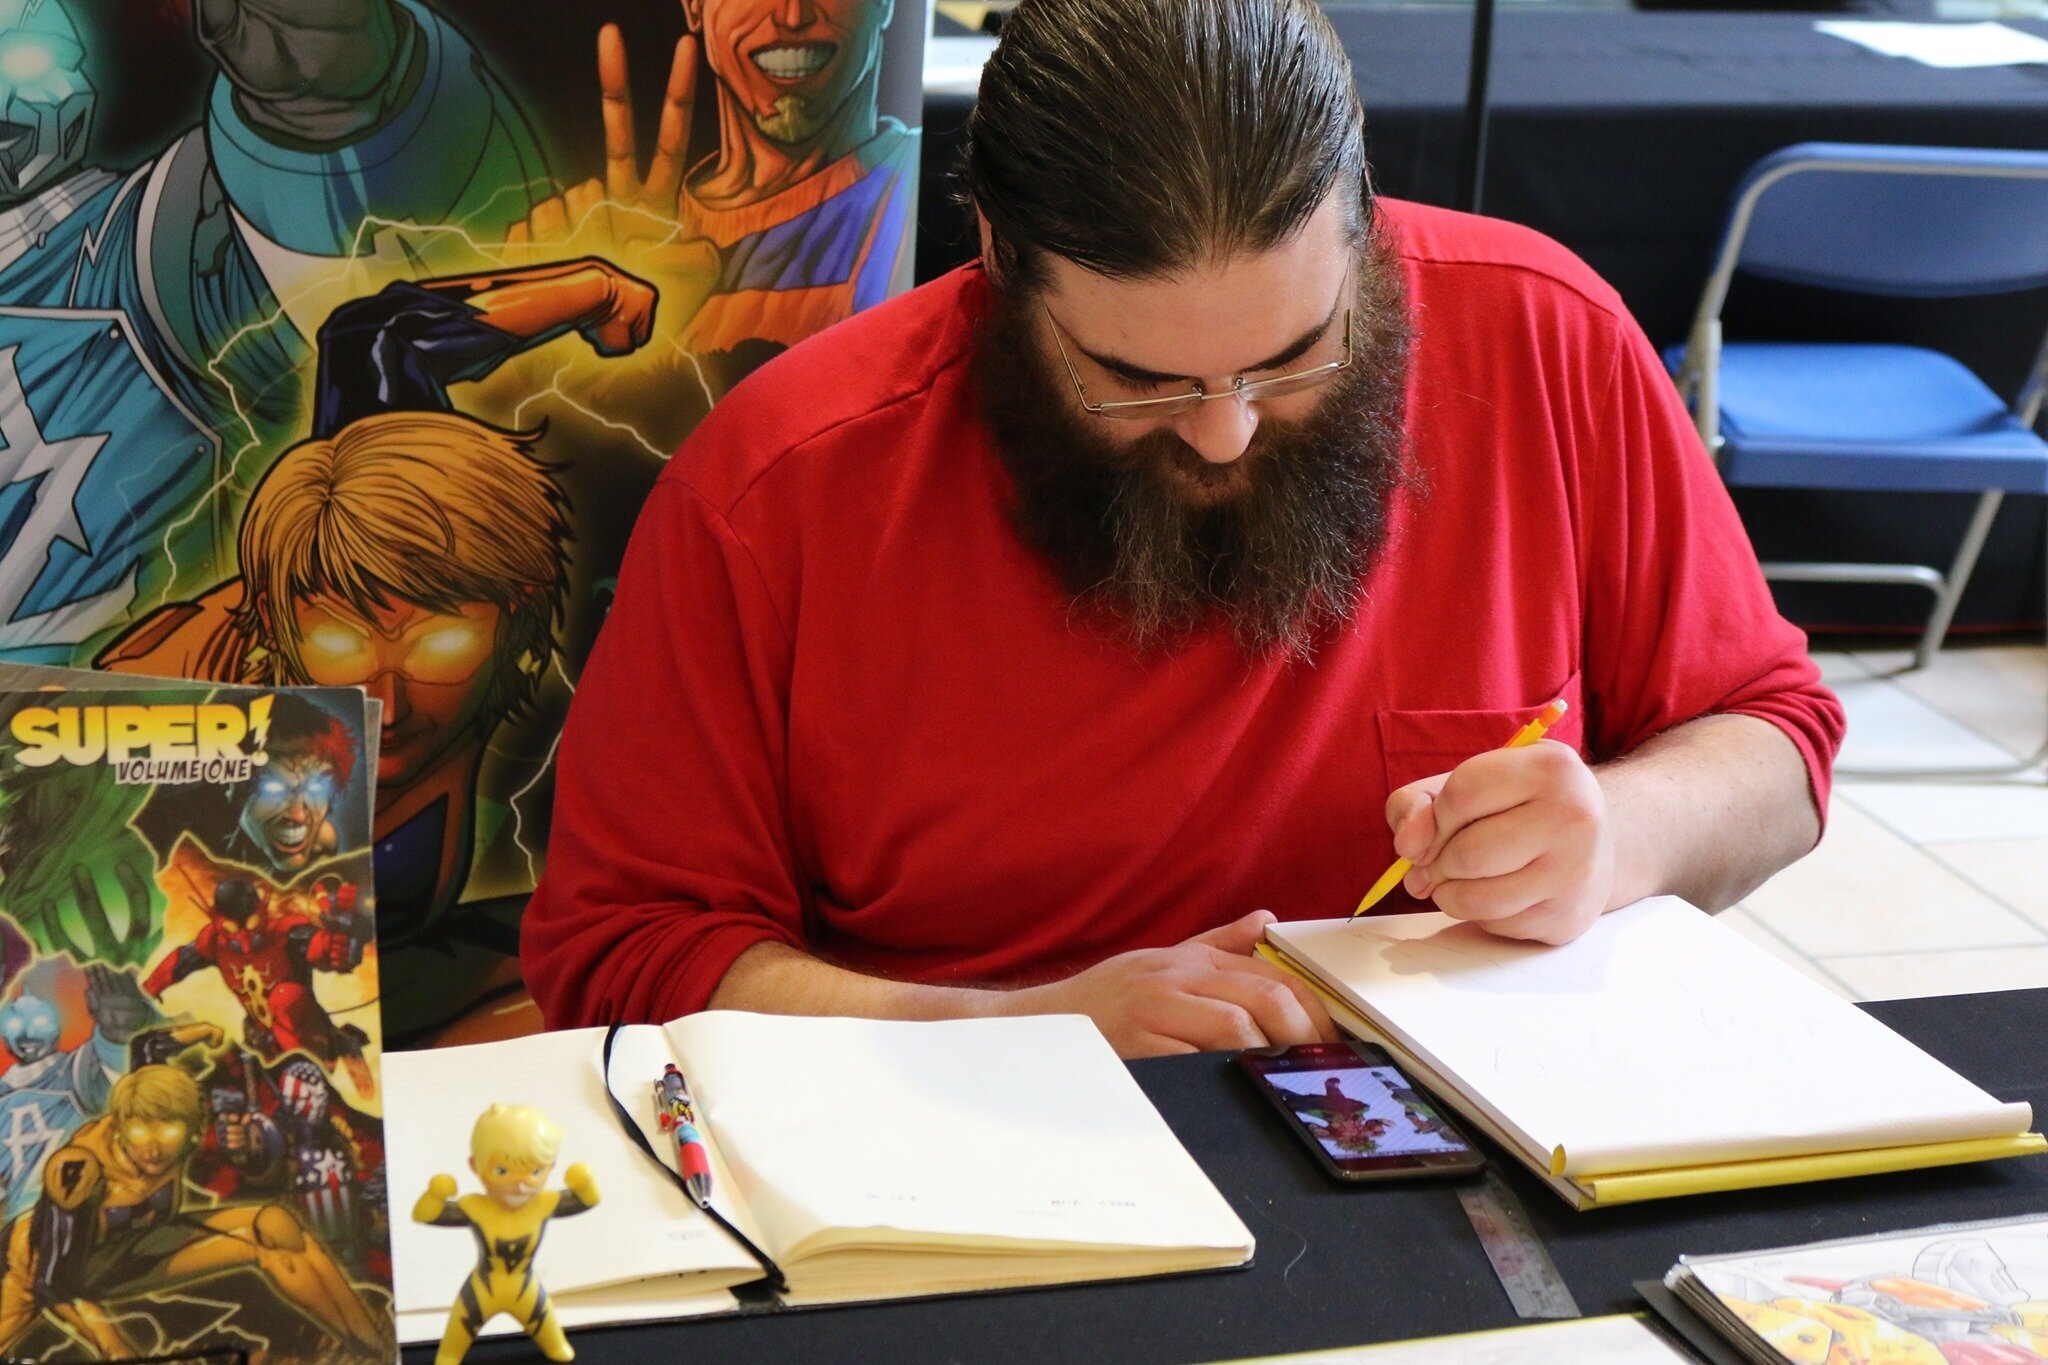 Here's Zack doing a sketch commission.